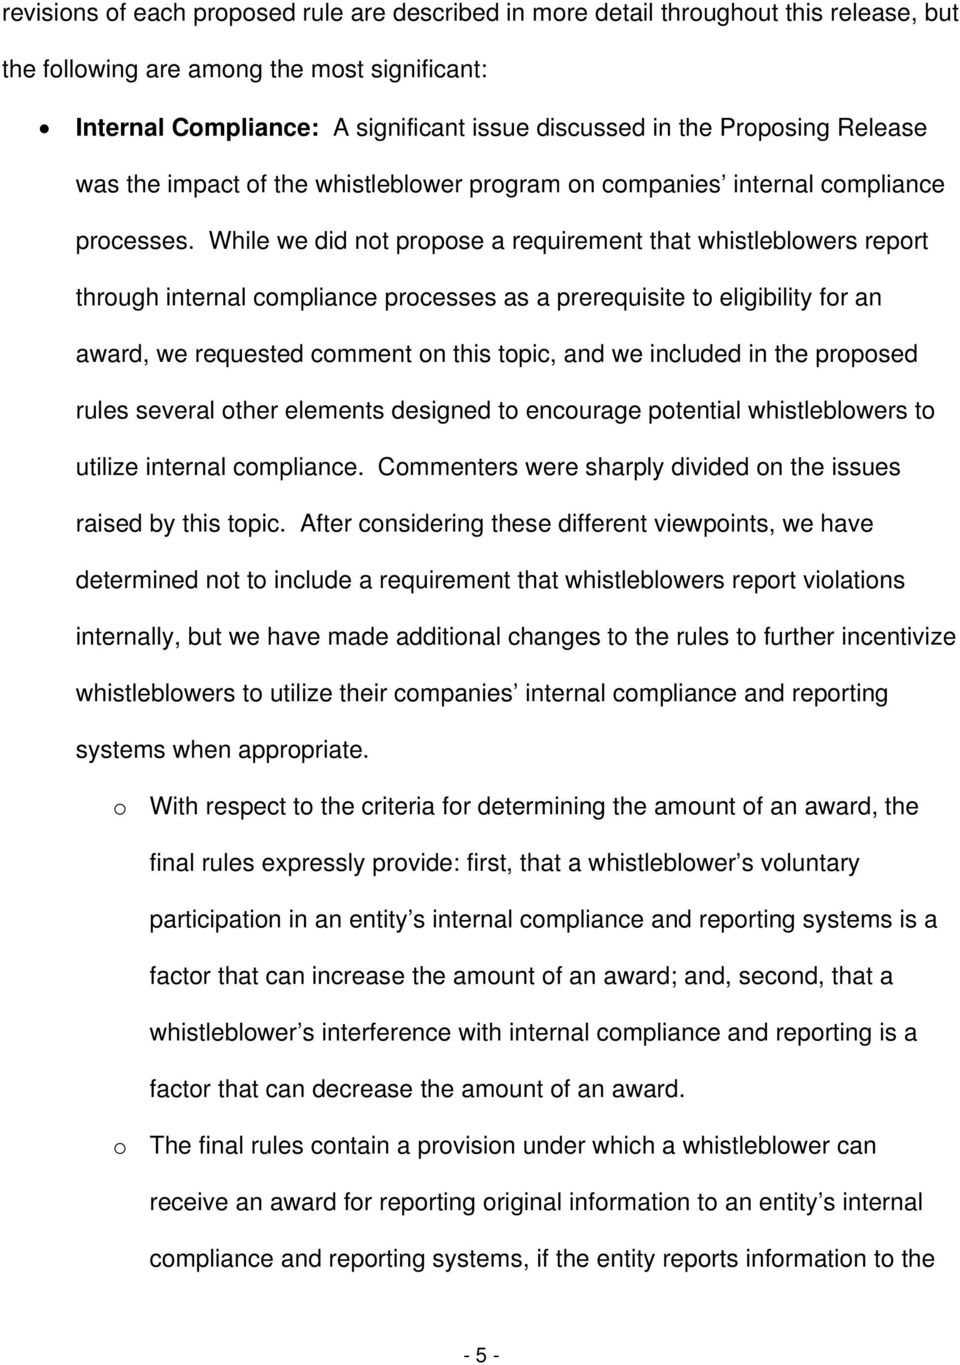 While we did not propose a requirement that whistleblowers report through internal compliance processes as a prerequisite to eligibility for an award, we requested comment on this topic, and we